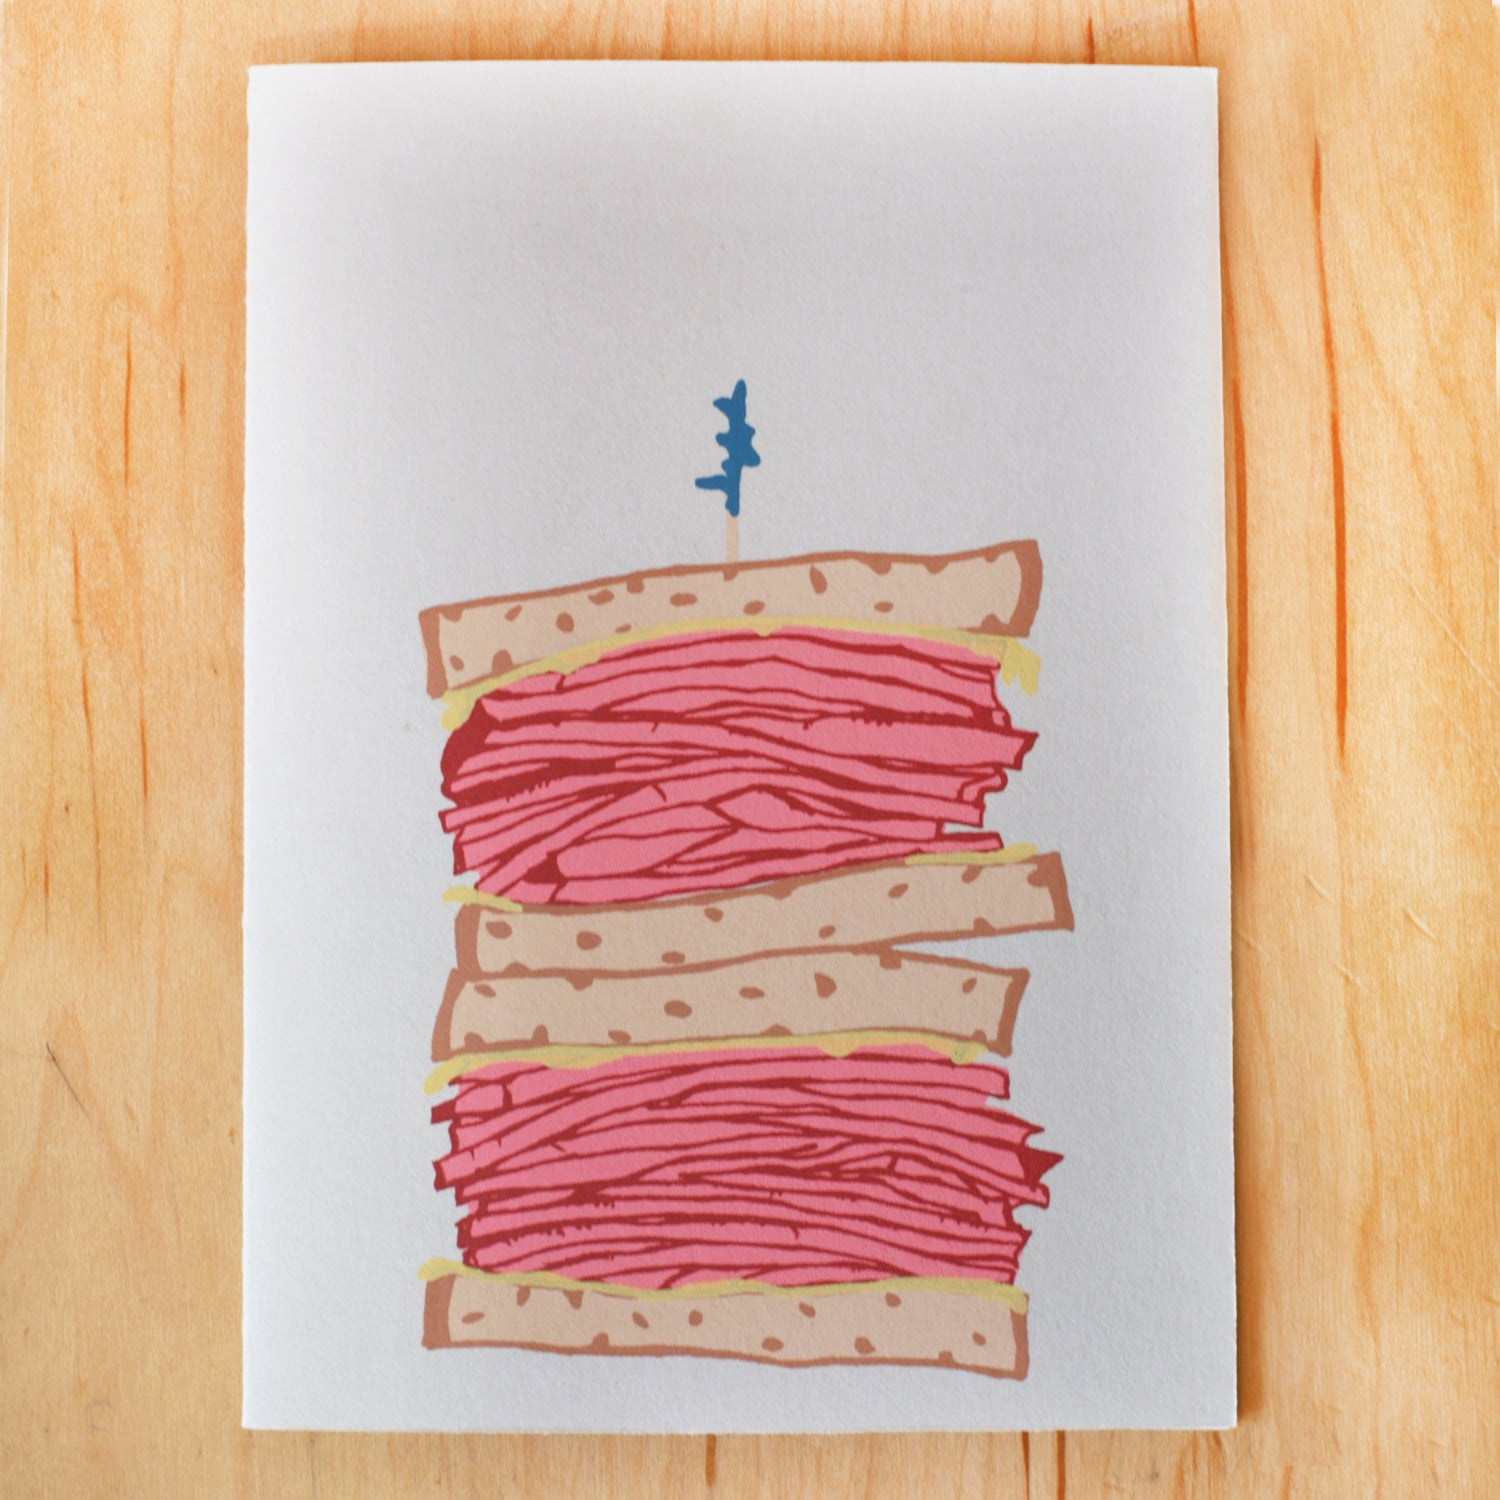 Image of Pastrami Sandwich